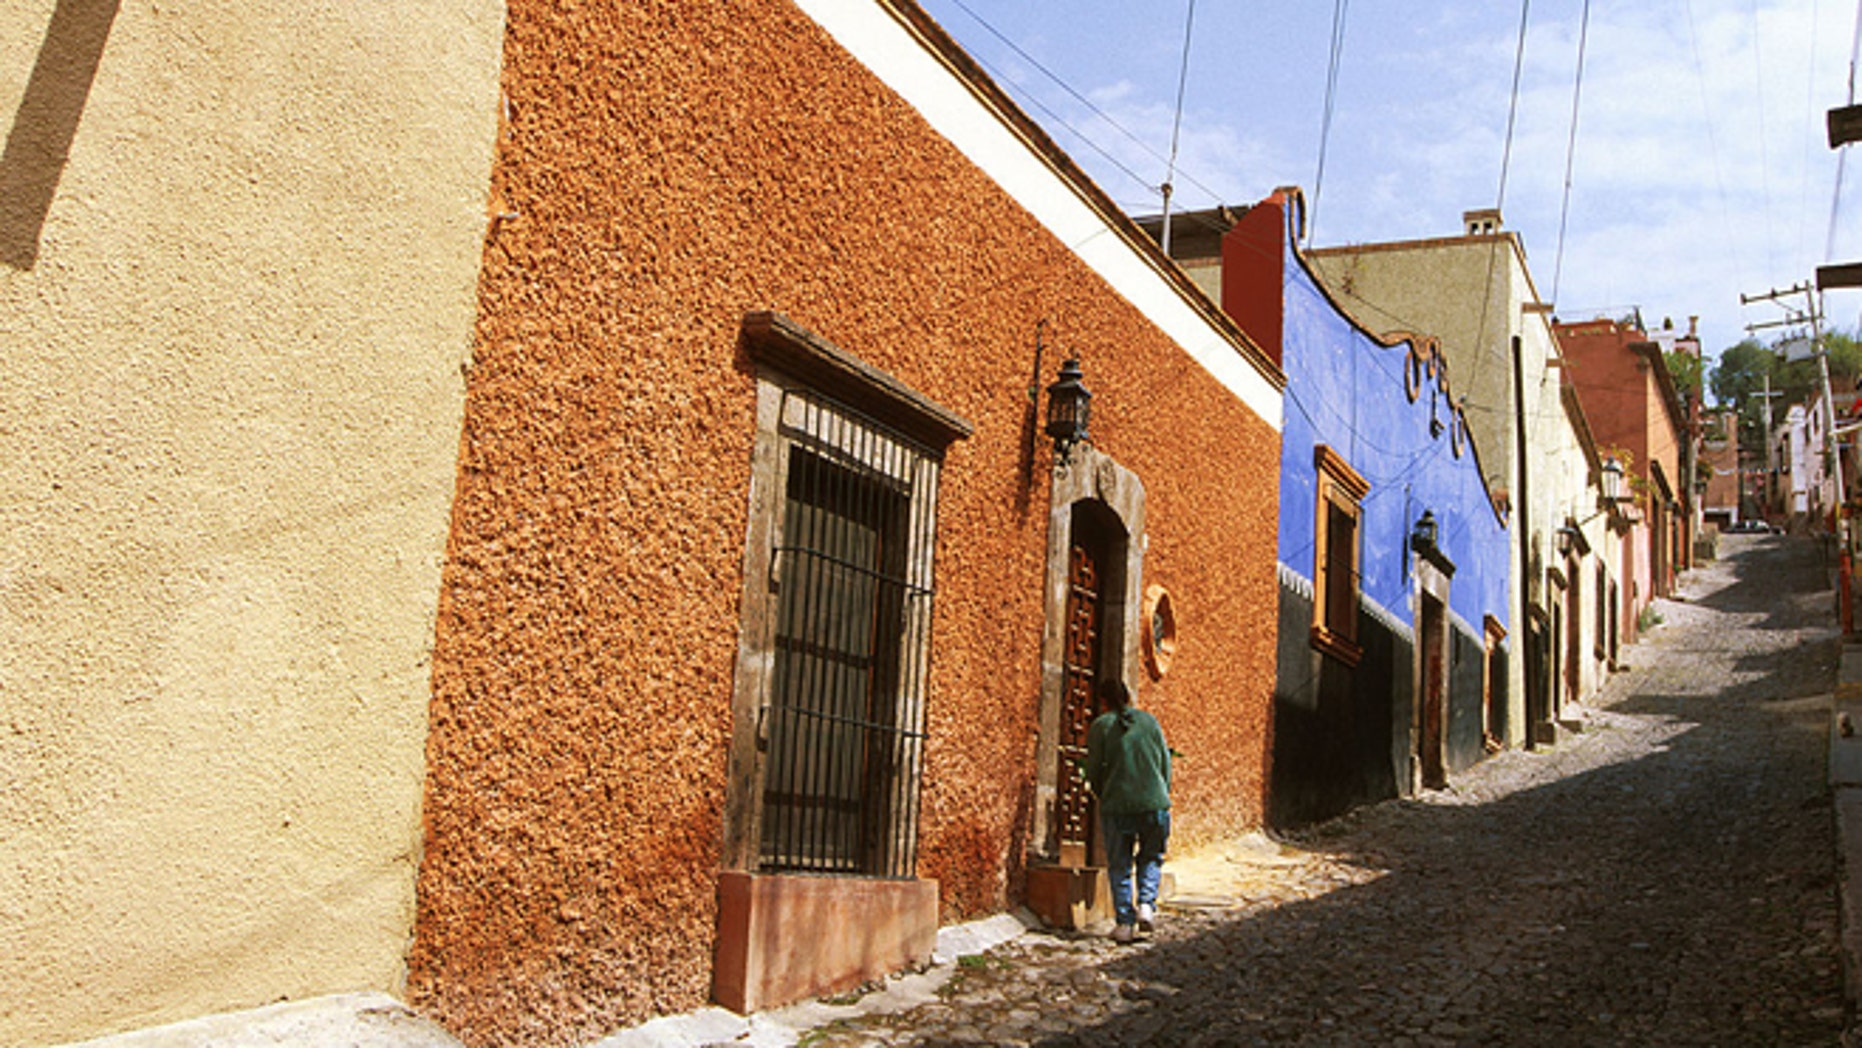 Mexico, San Miguel De Allende, Person Standing In Front Of A Doorway On A Cobblestone Roadway. (Photo by Education Images/UIG via Getty Images)